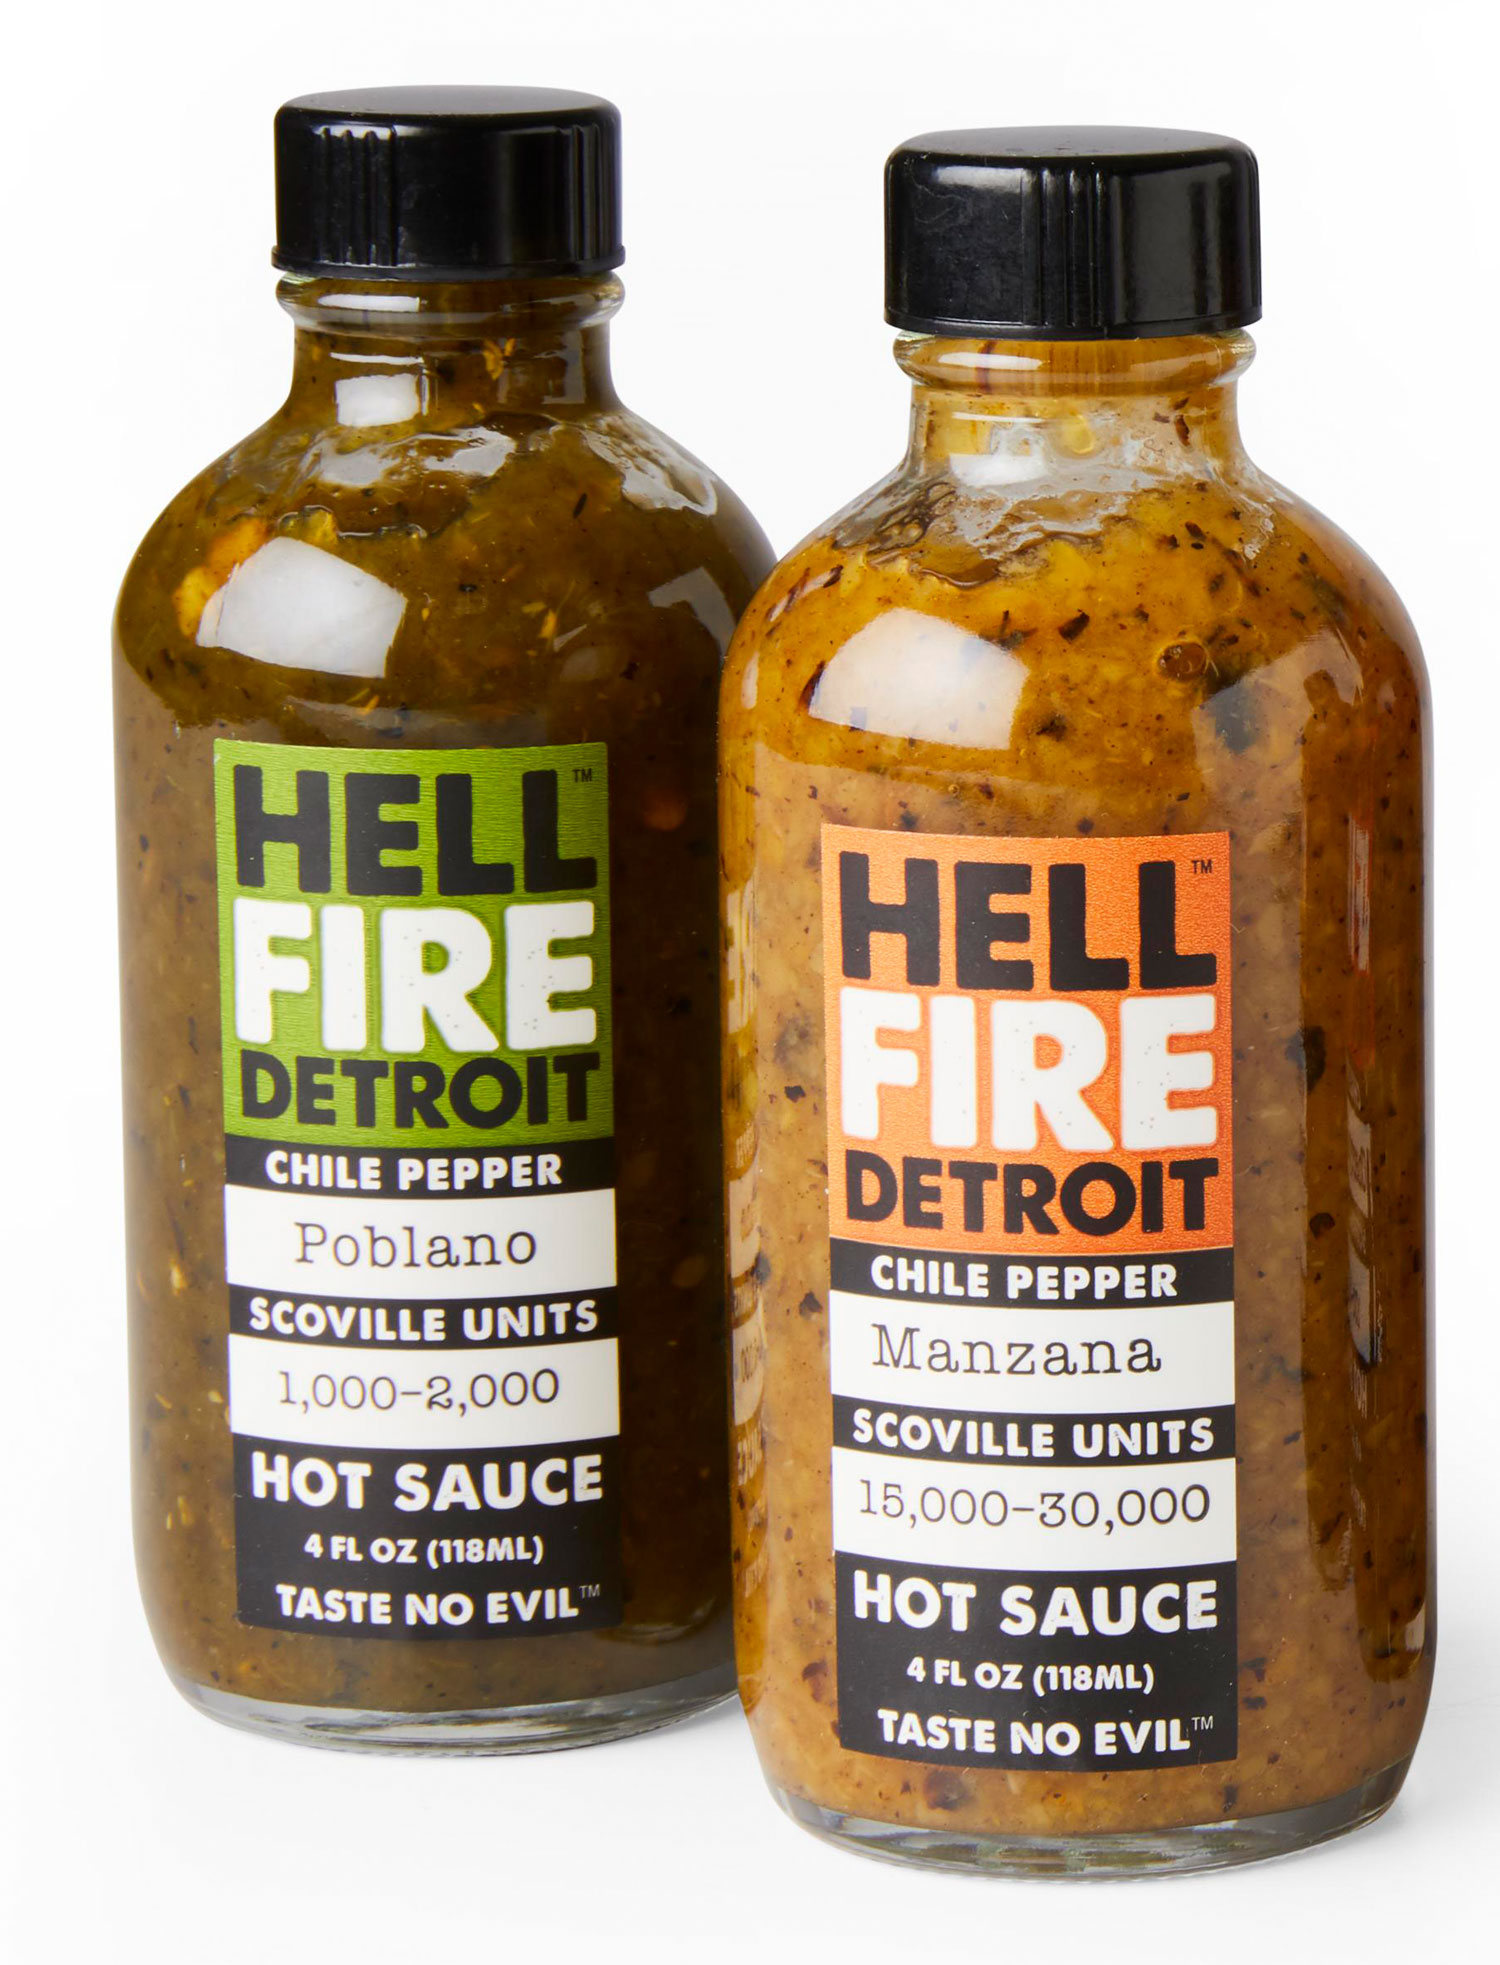 Hell Fire Detroit's hot sauces